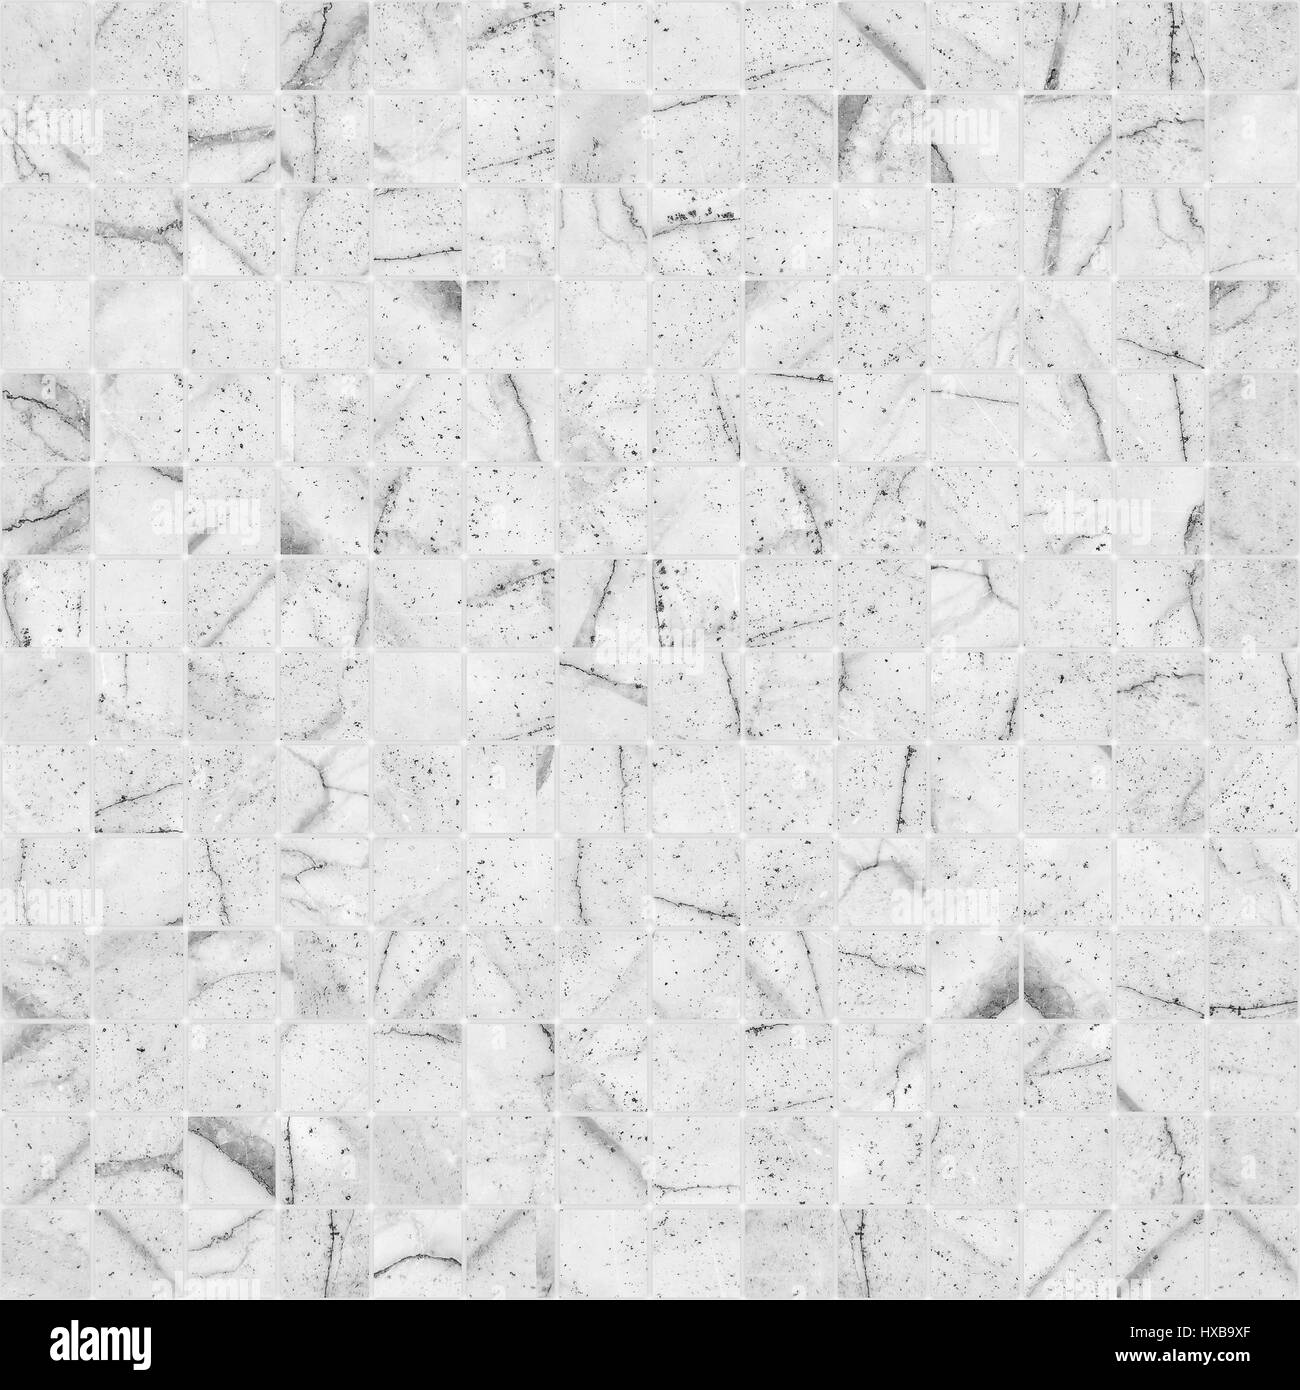 White Mosaic Marble Tile Texture Seamless Stock Photo Alamy